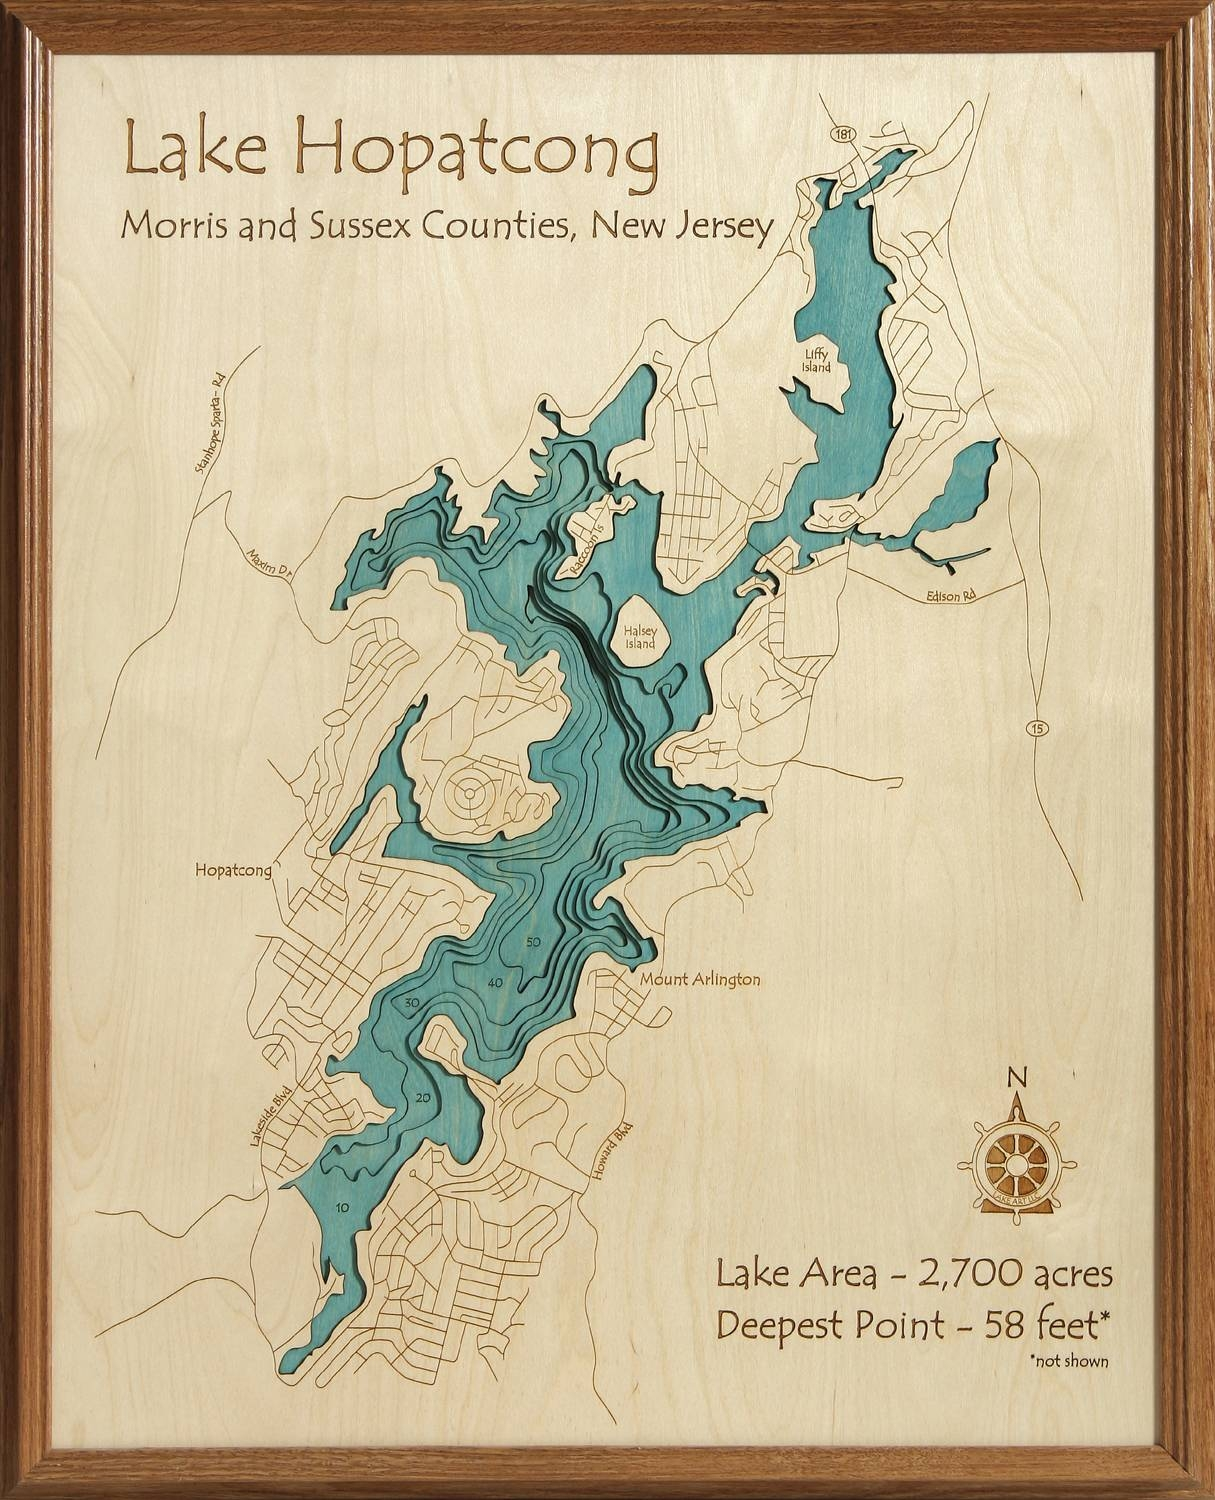 3D Laser Carved Wood Lake Maps | Lakehouse Lifestyle Within Recent Lake Map Wall Art (Gallery 7 of 20)